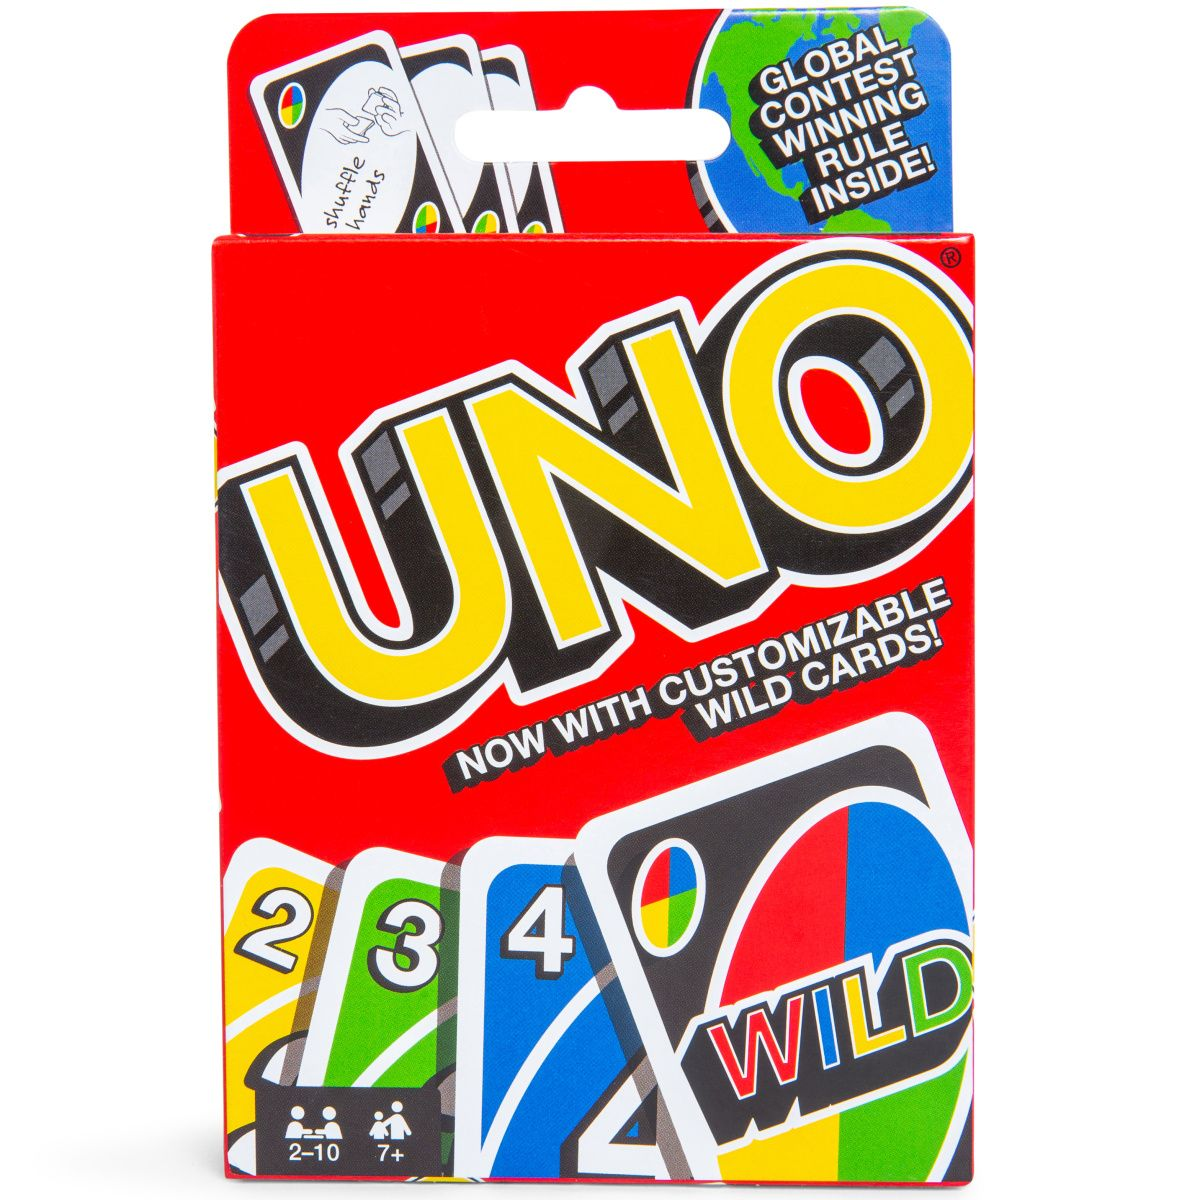 Uno® card game in 2020 Family card games, Card games